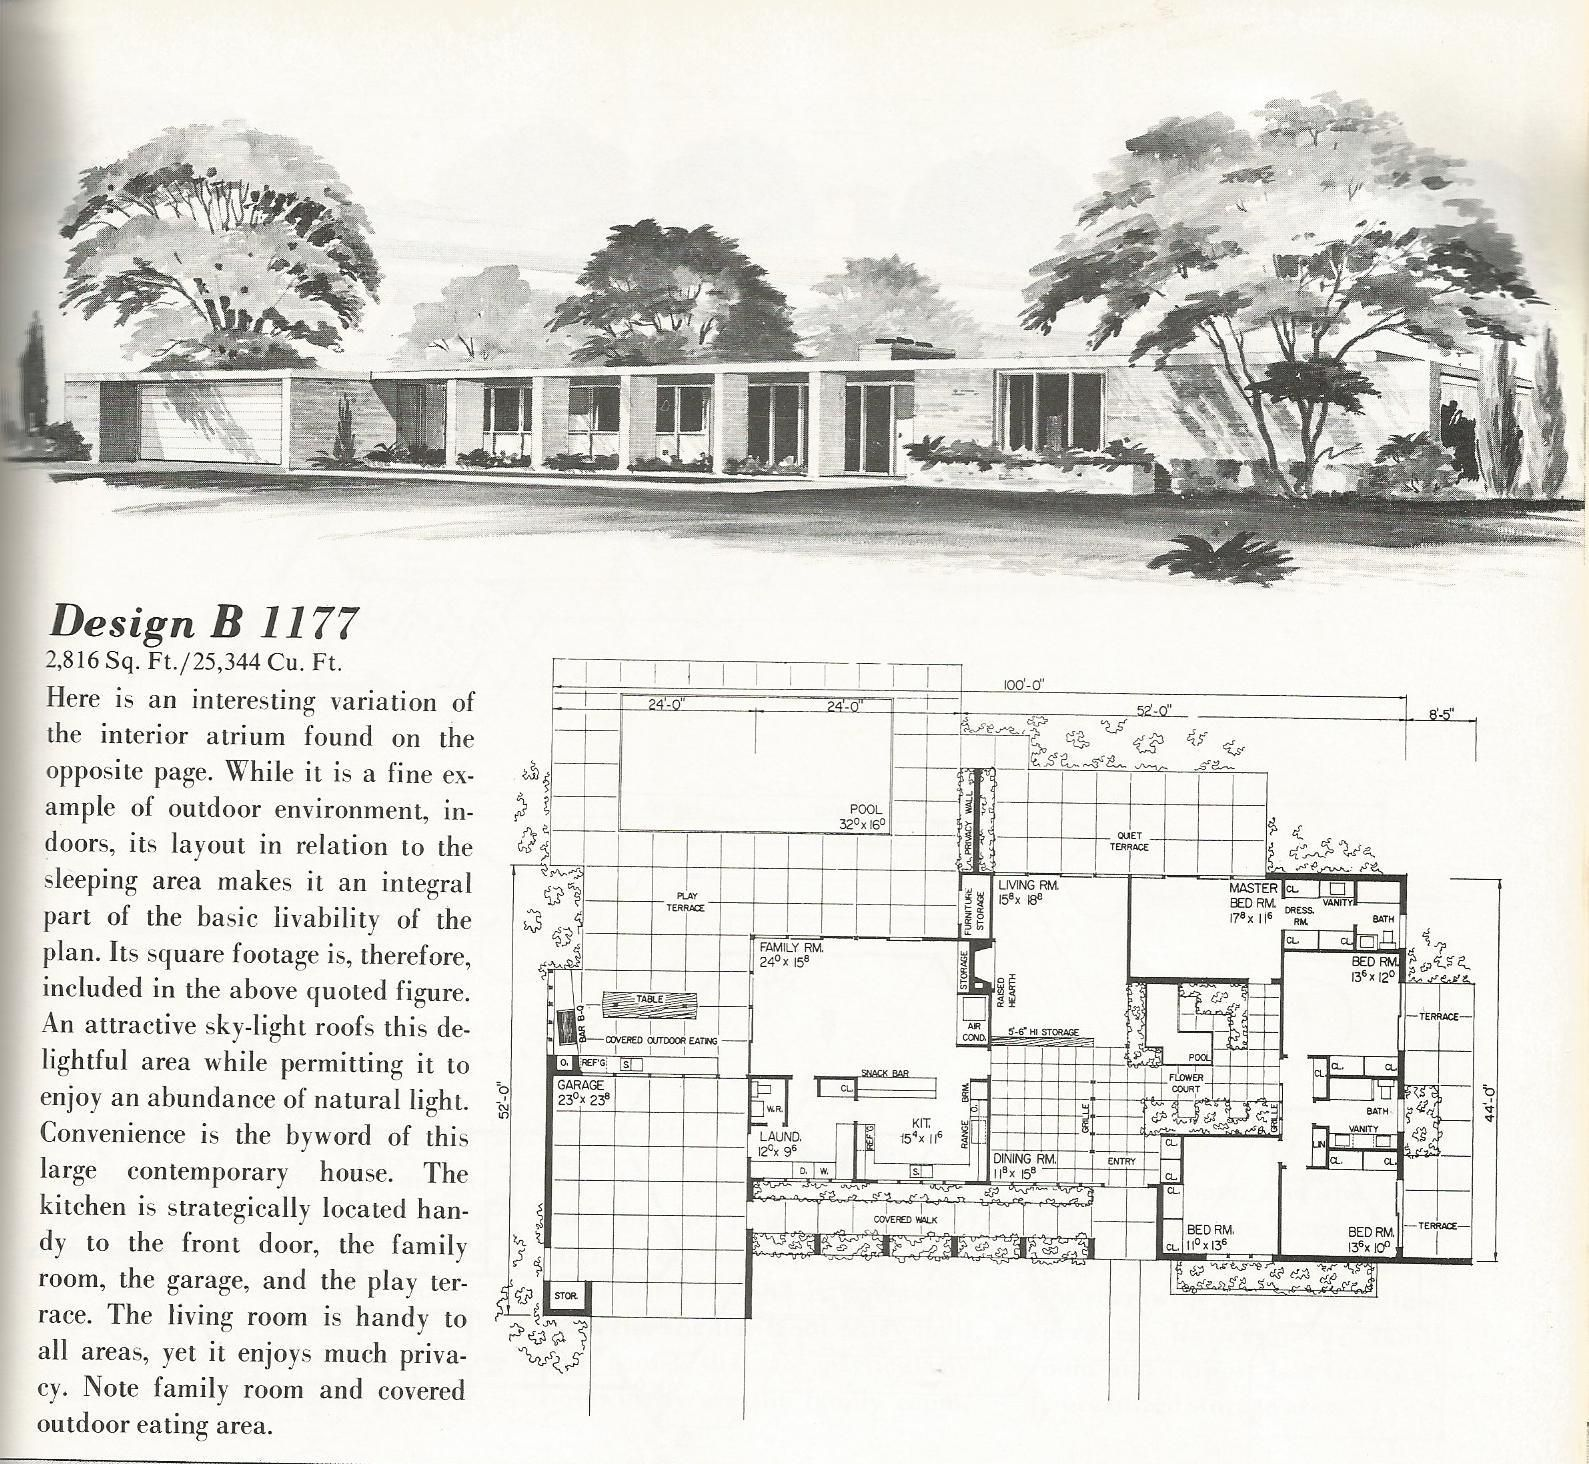 vintage house plans country estates mid century architecture vintage house plans country estates